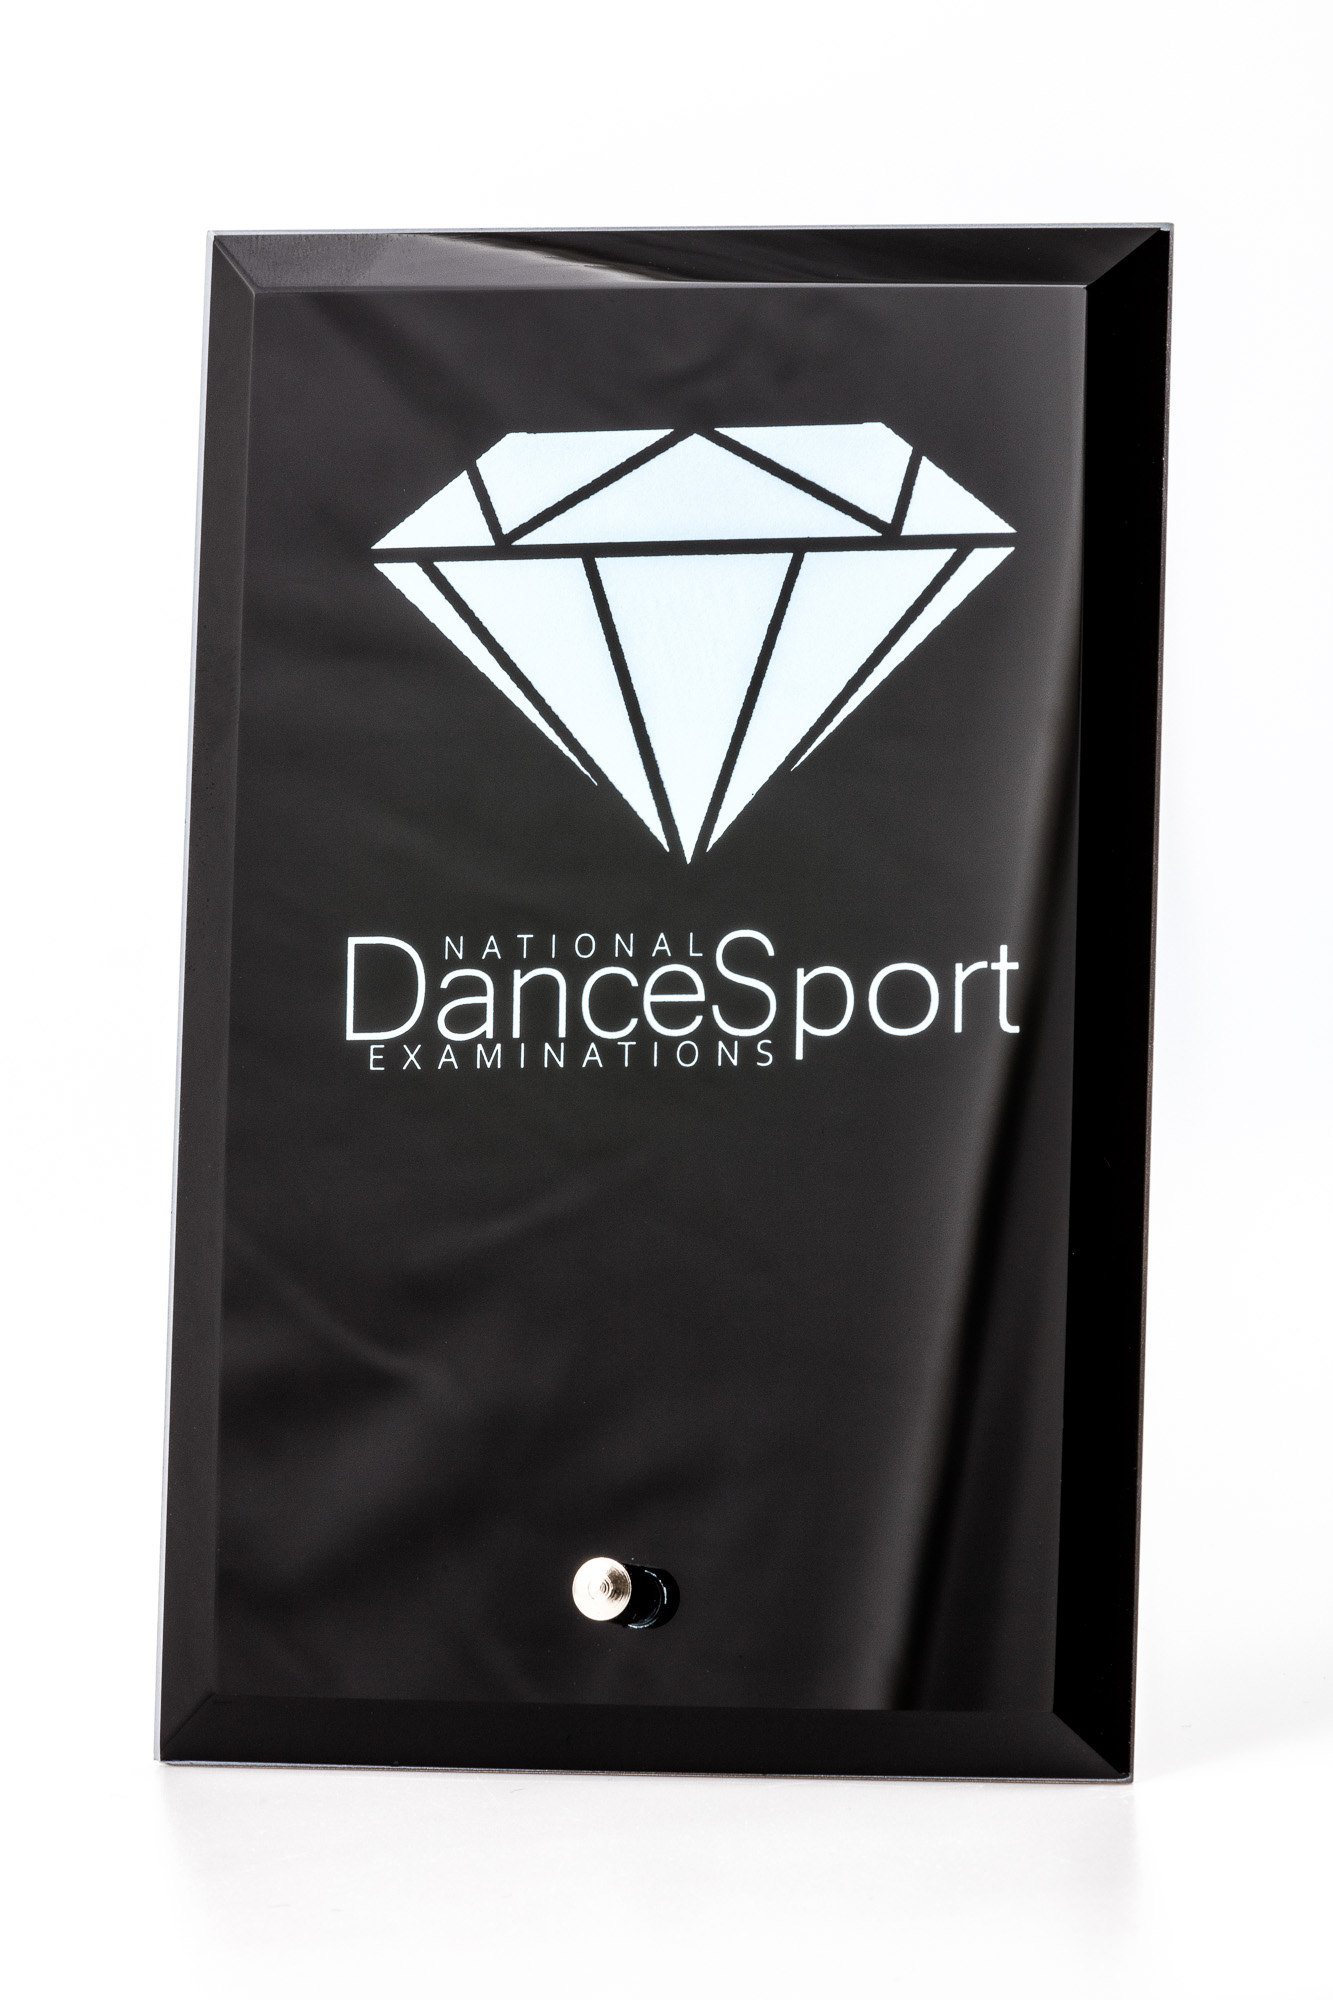 Product photography of dancing medal and plate - Black plate